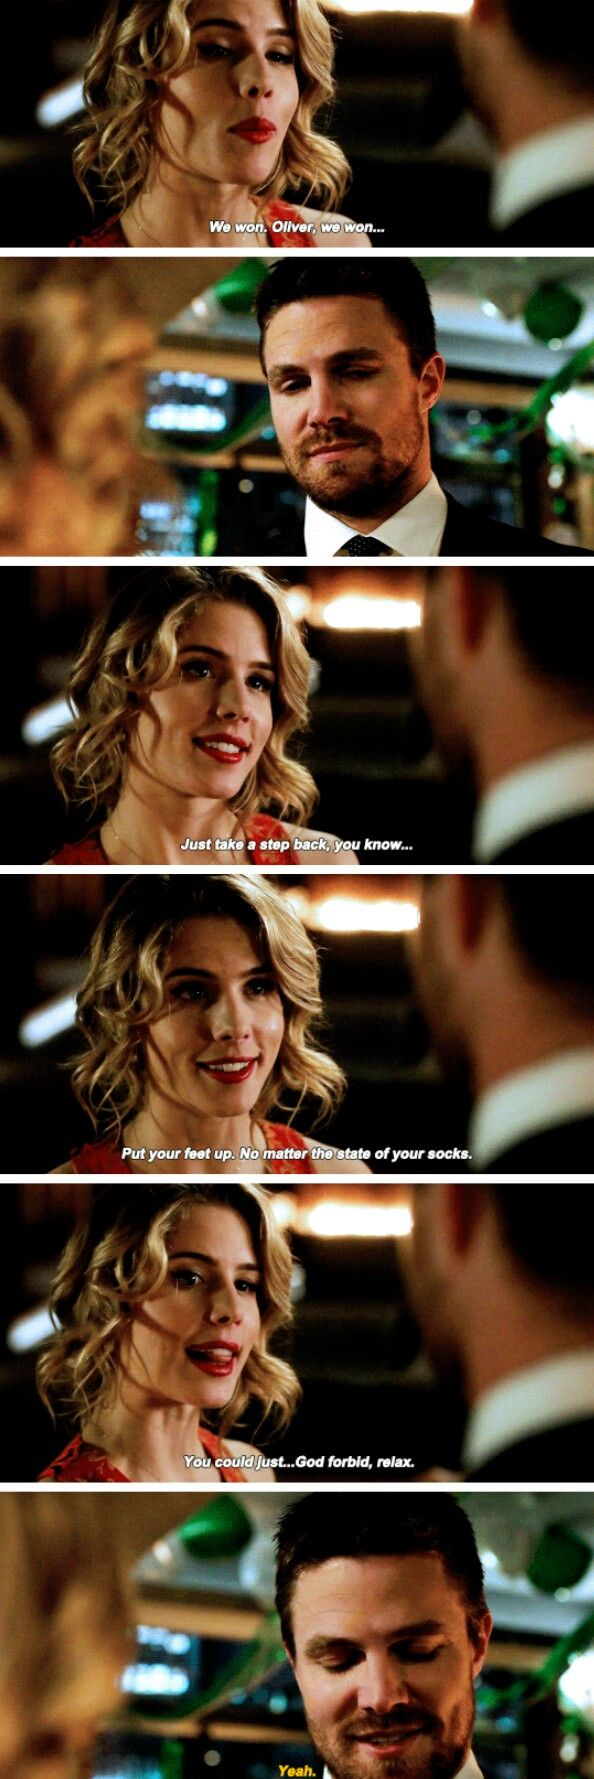 "#Arrow 5x22 ""Missing"" - ""We won, Oliver. You could just... God forbid, relax"" - #FelicitySmoak #OliverQueen"